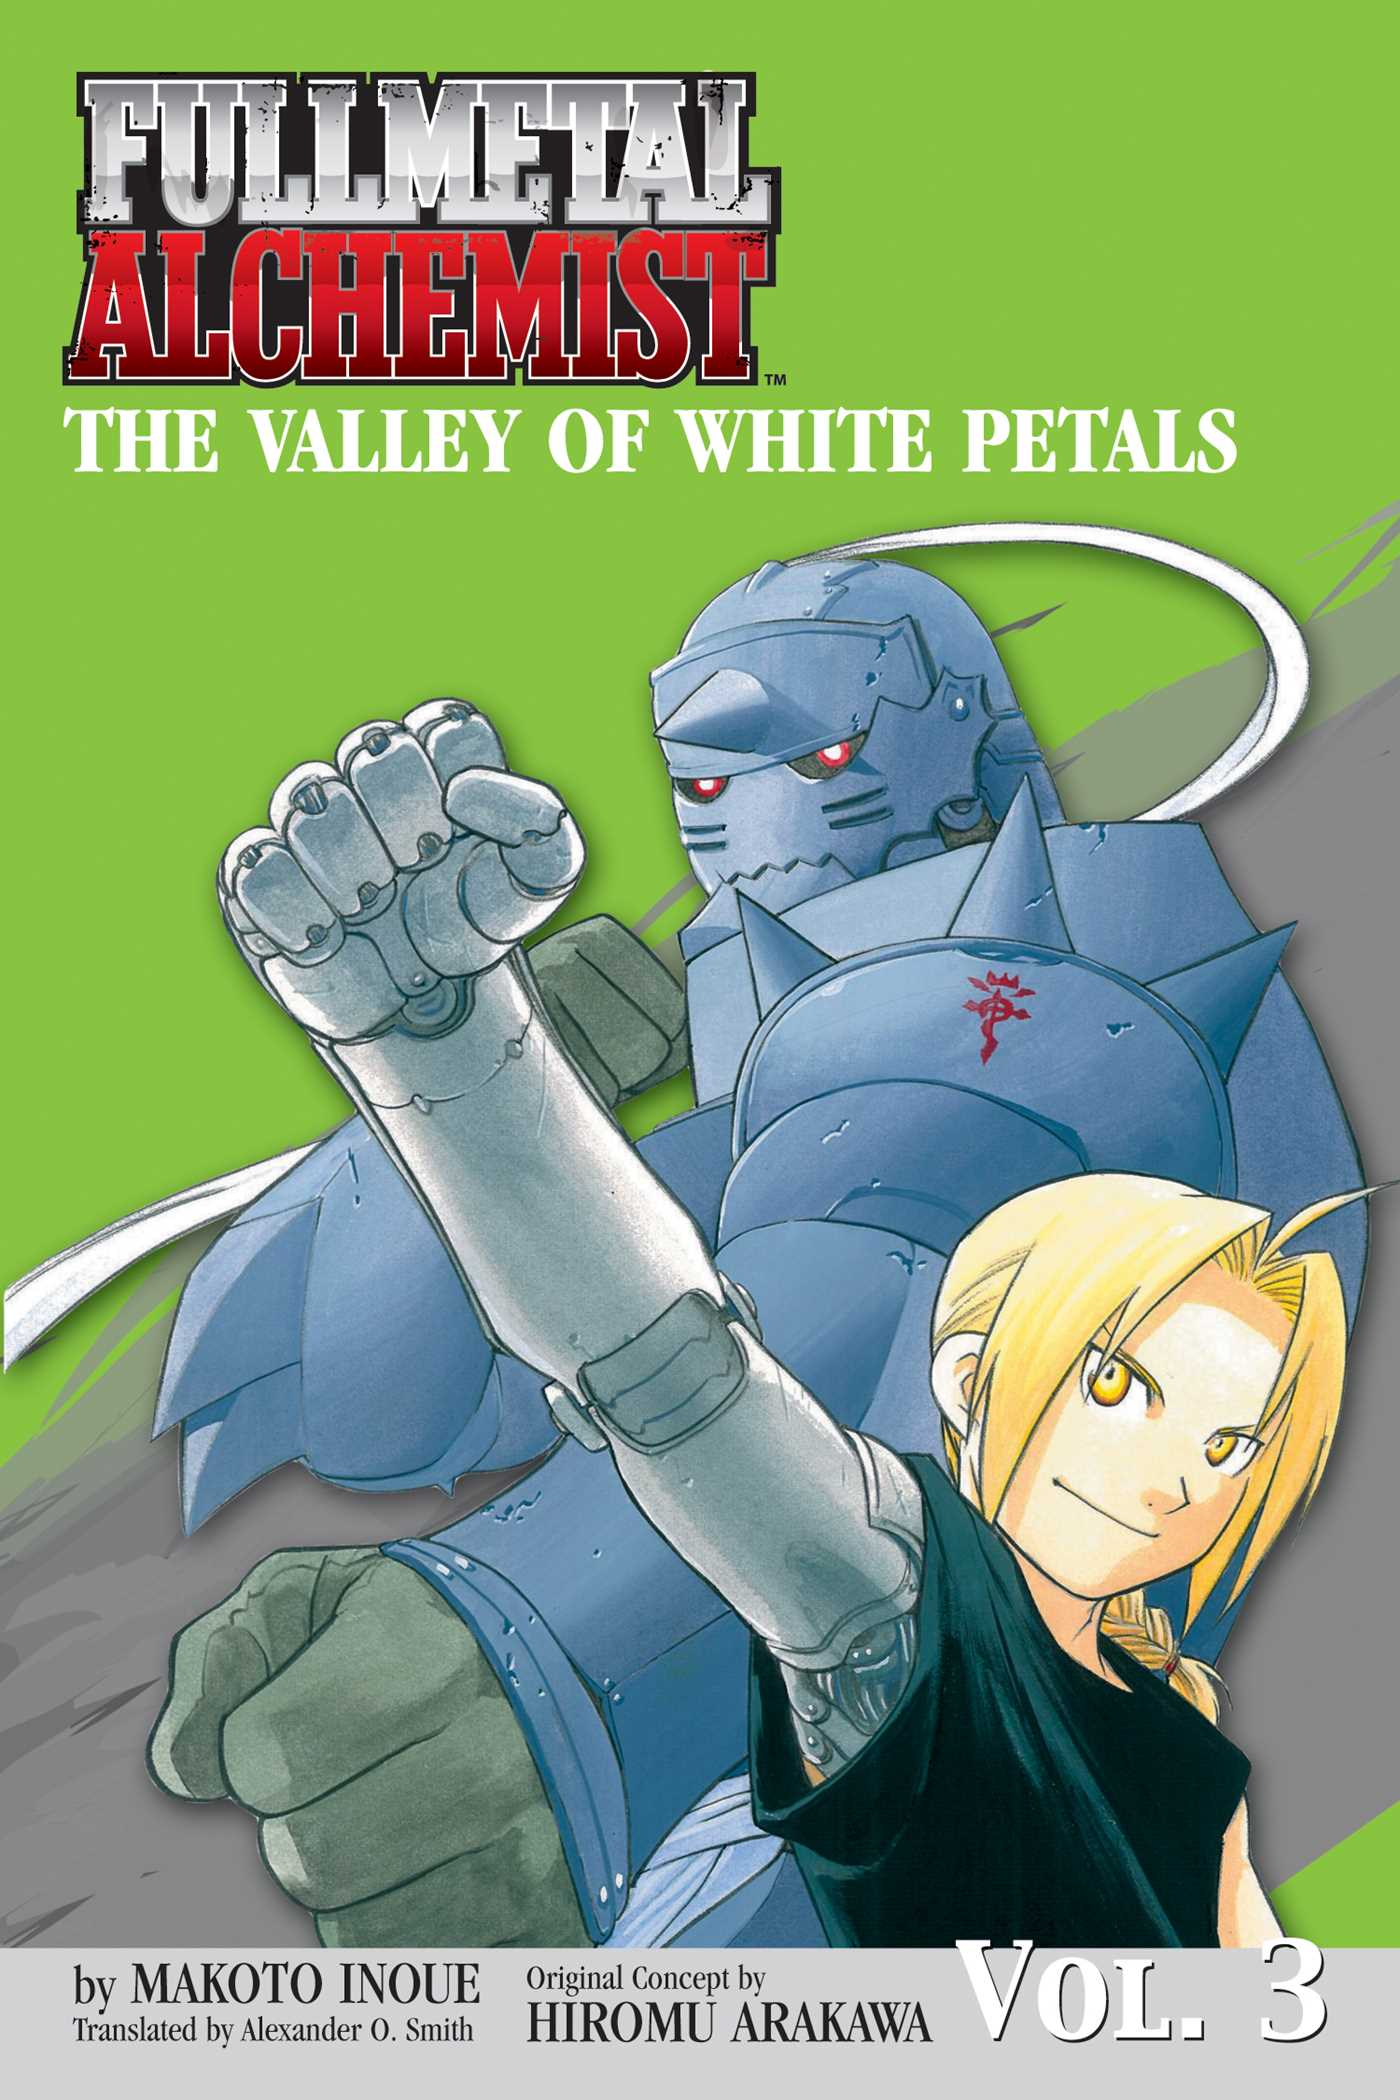 Fullmetal alchemist the valley of white petals novel 9781421504025 hr